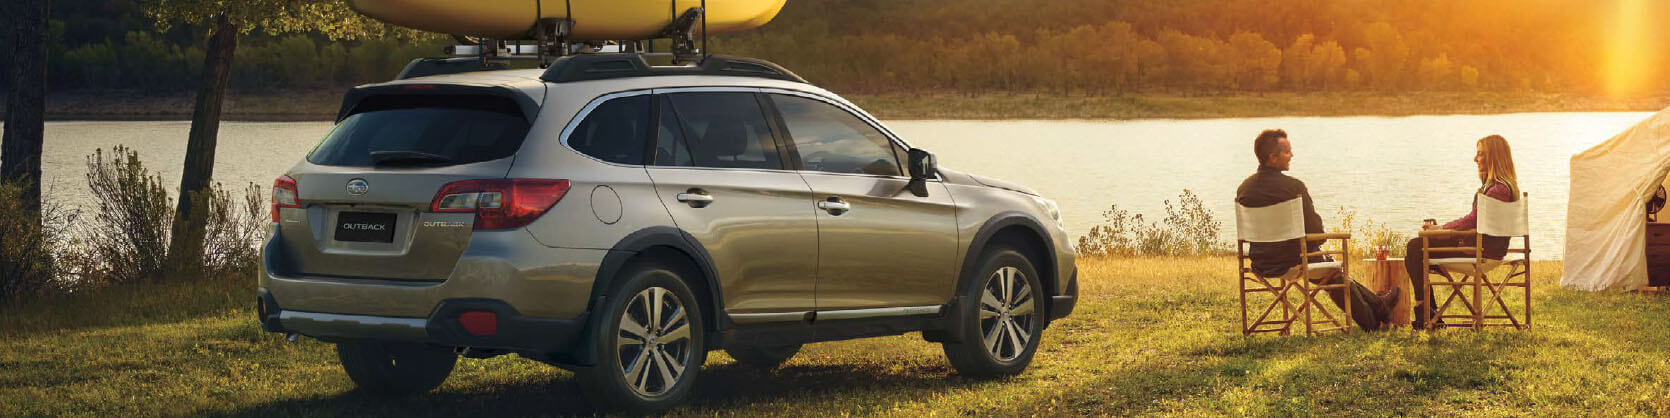 New Subaru Outback for sale in Tweed Heads Gold Coast